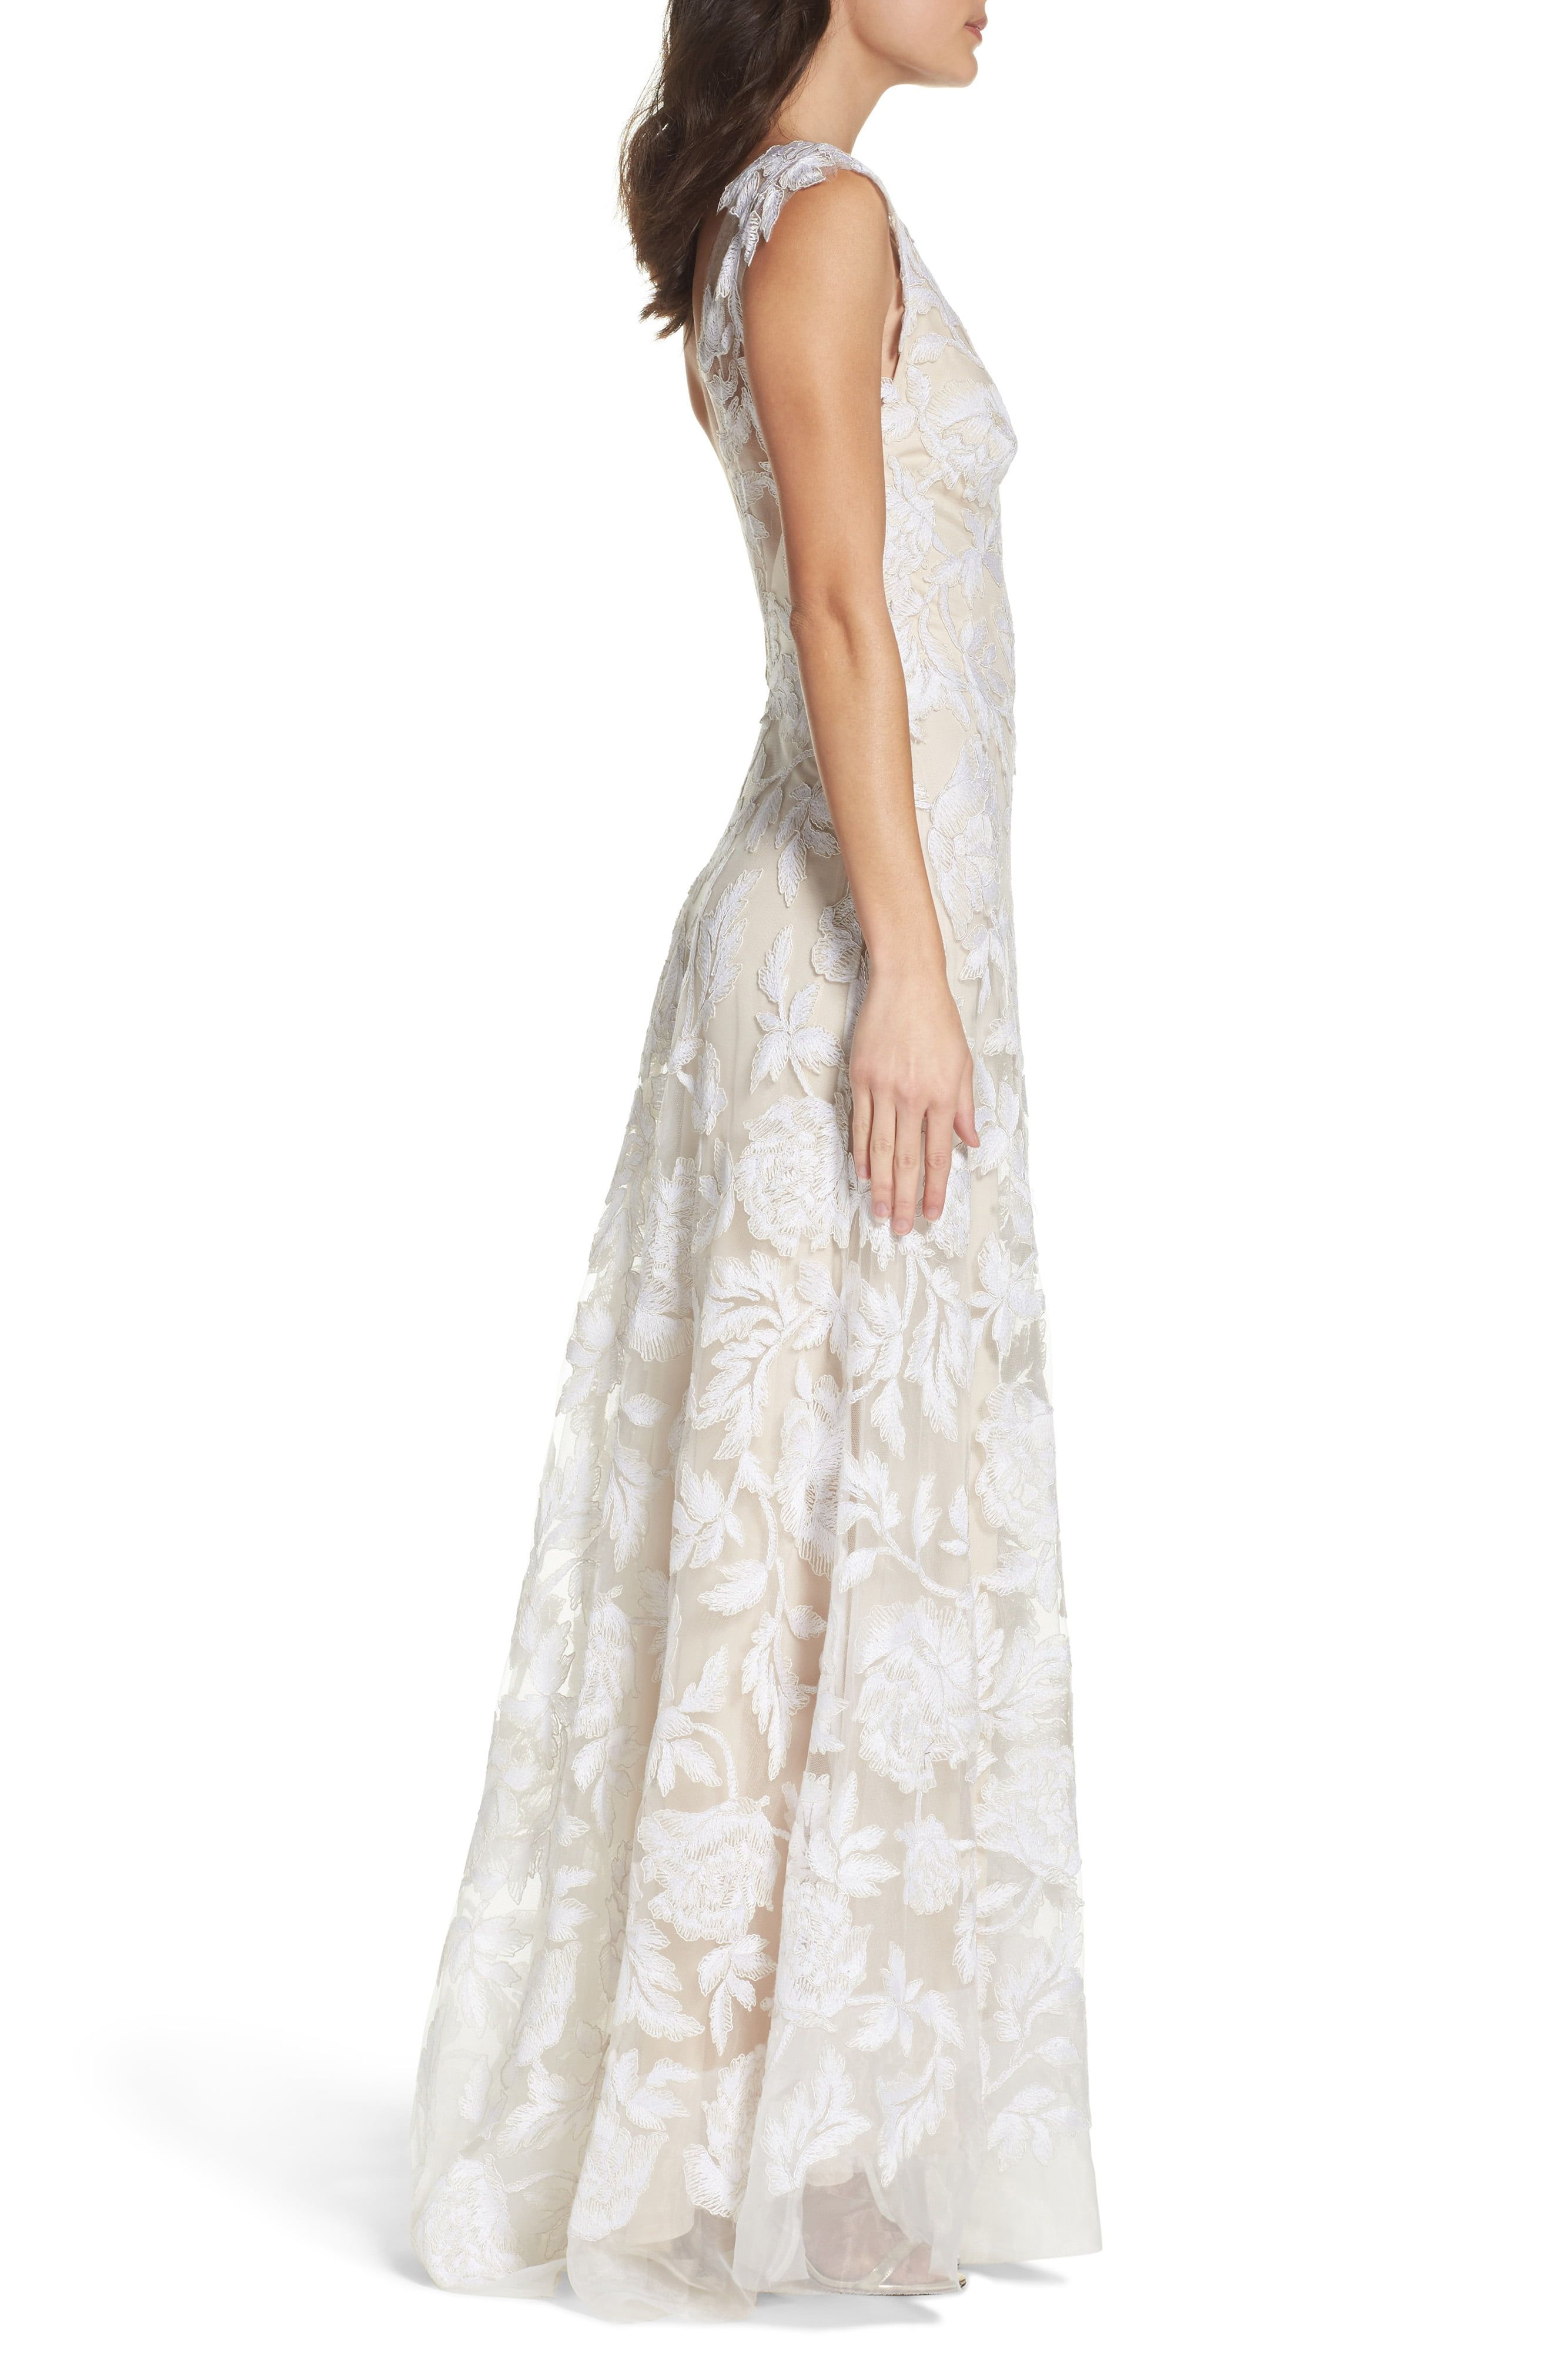 Tadashi Shoji Lace A Line Gown Nordstrom In 2021 Lace Gown A Line Gown Tadashi Shoji [ 4048 x 2640 Pixel ]